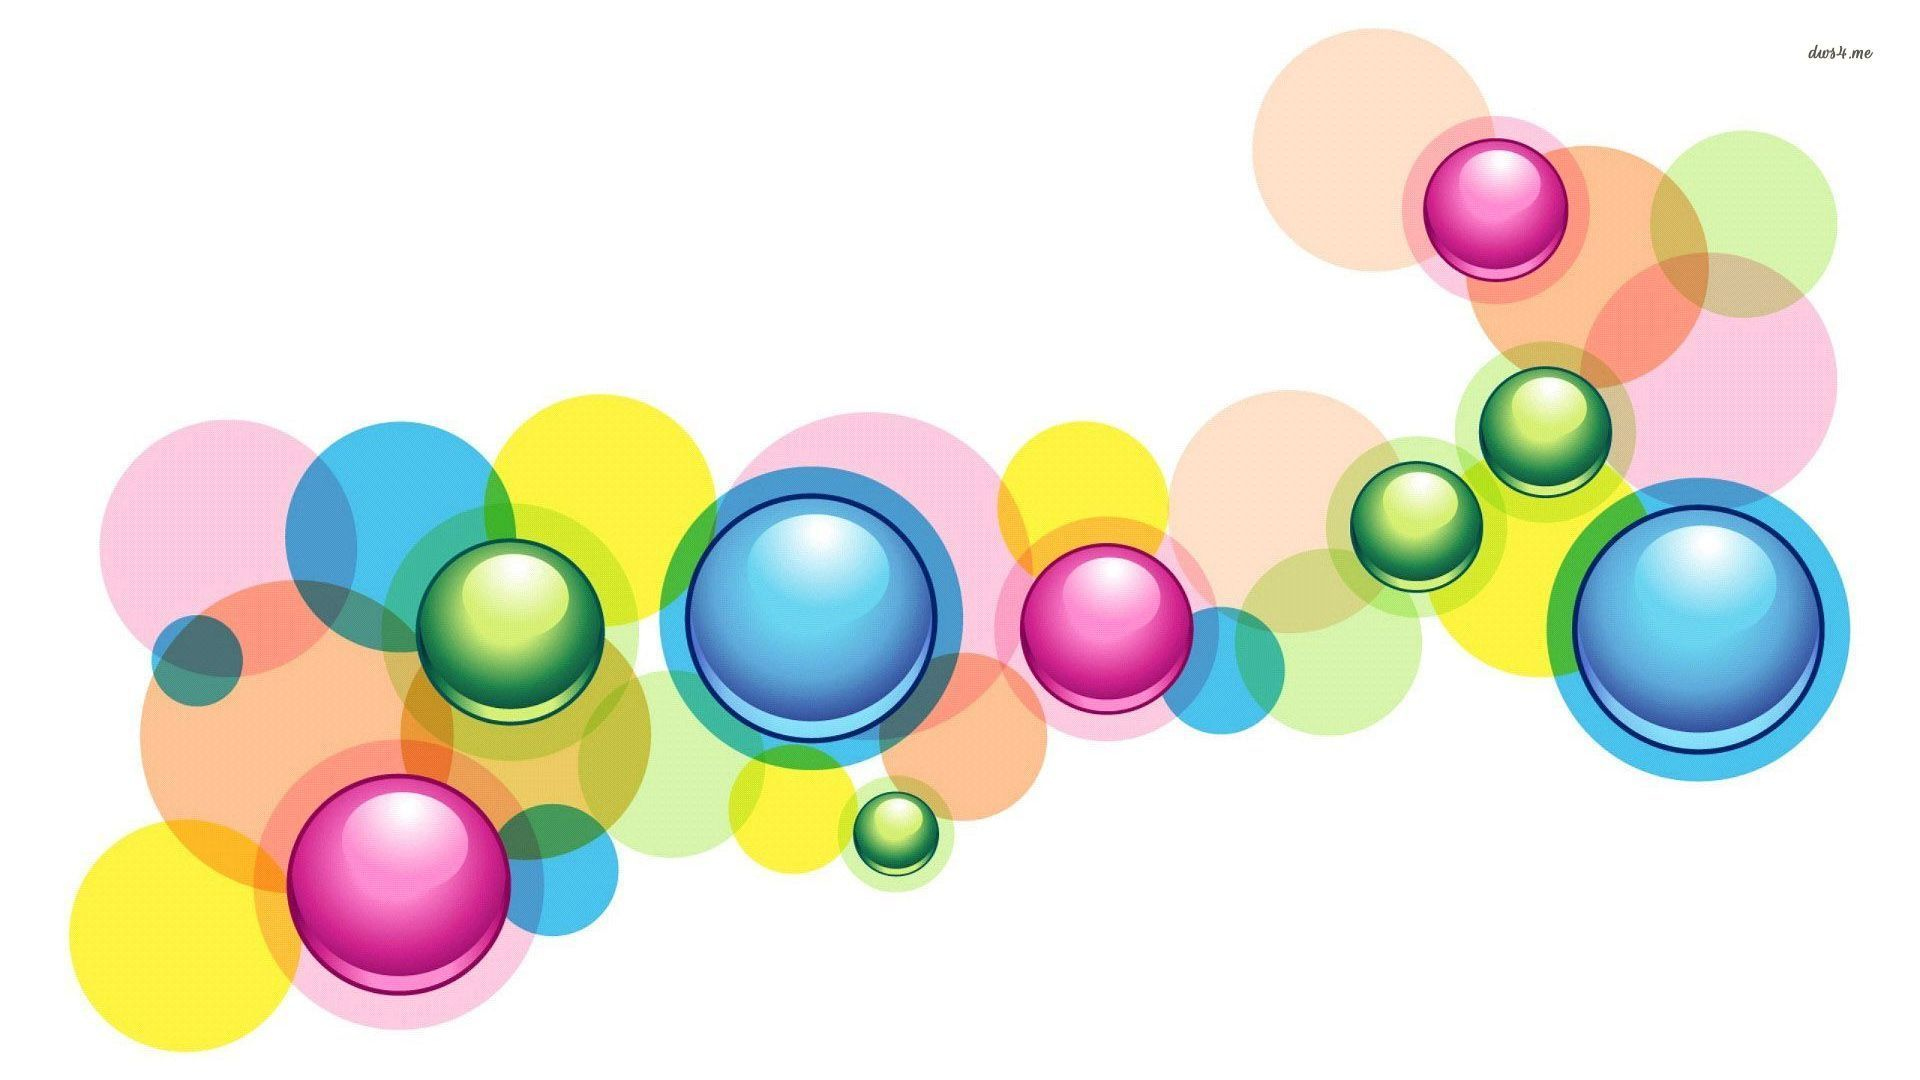 Full HD Wallpapers Backgrounds, Circles 2560×1440 Wallpapers With ...